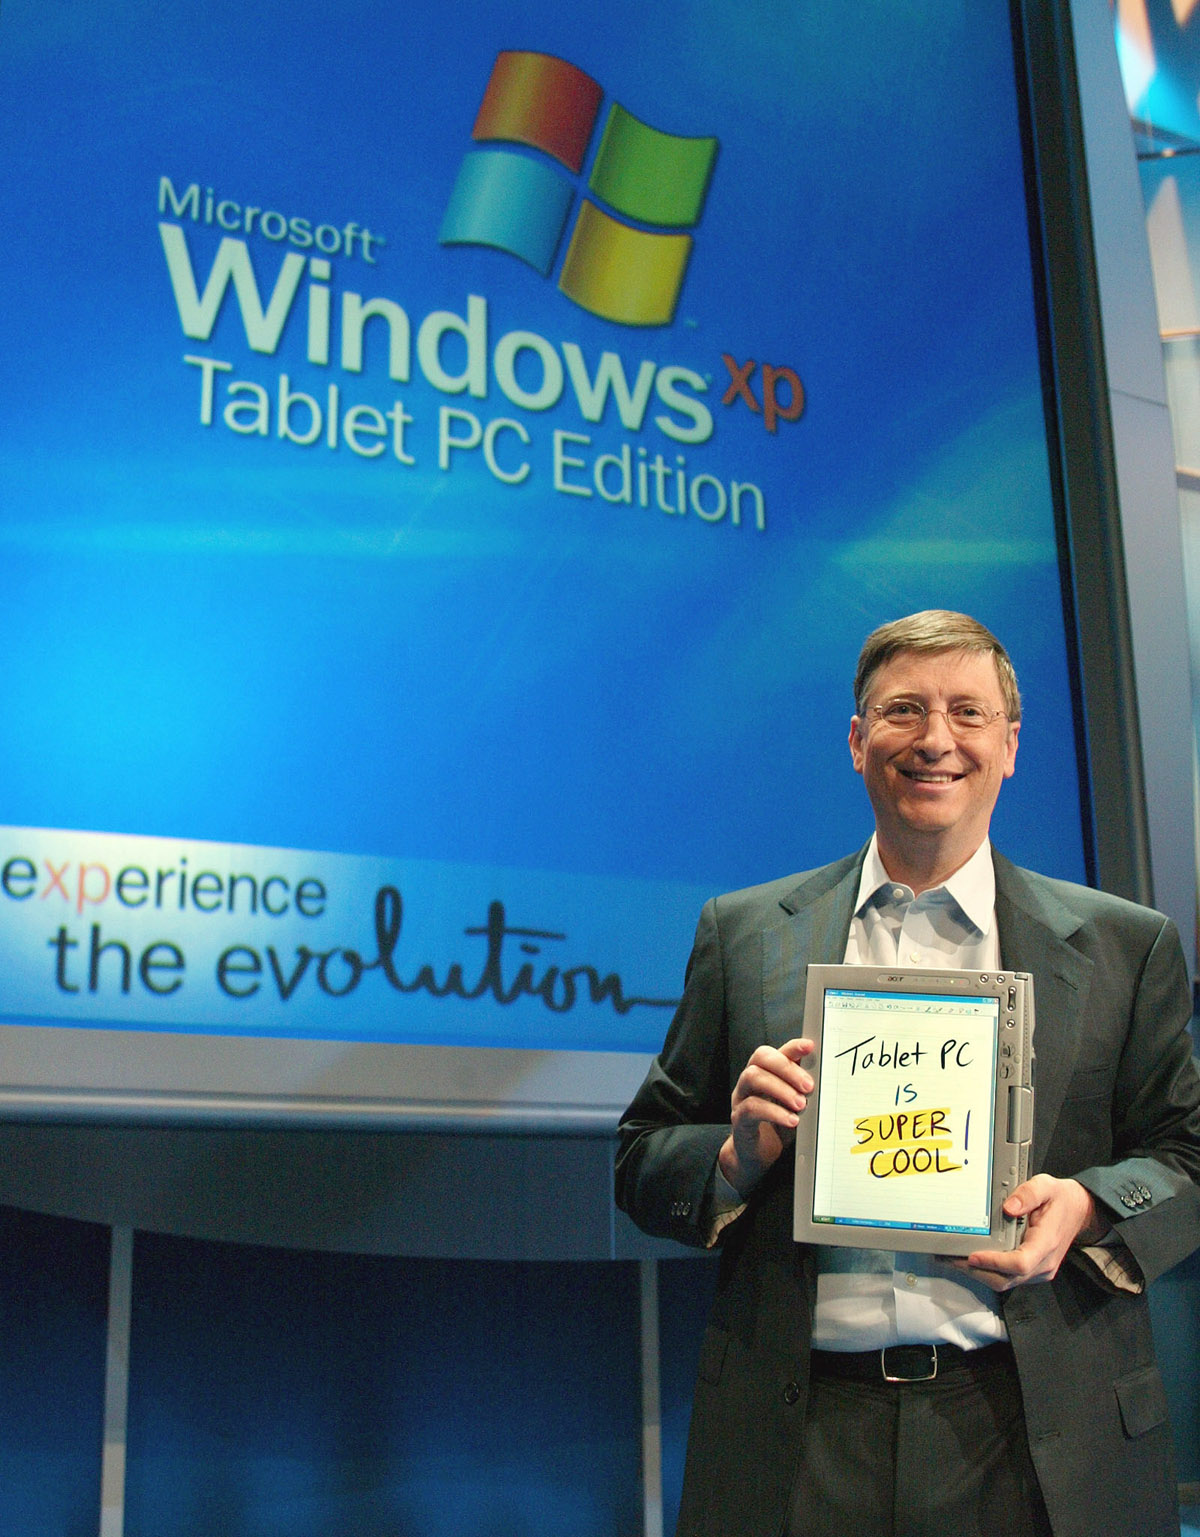 Microsoft's Long Love Affair With Tablets